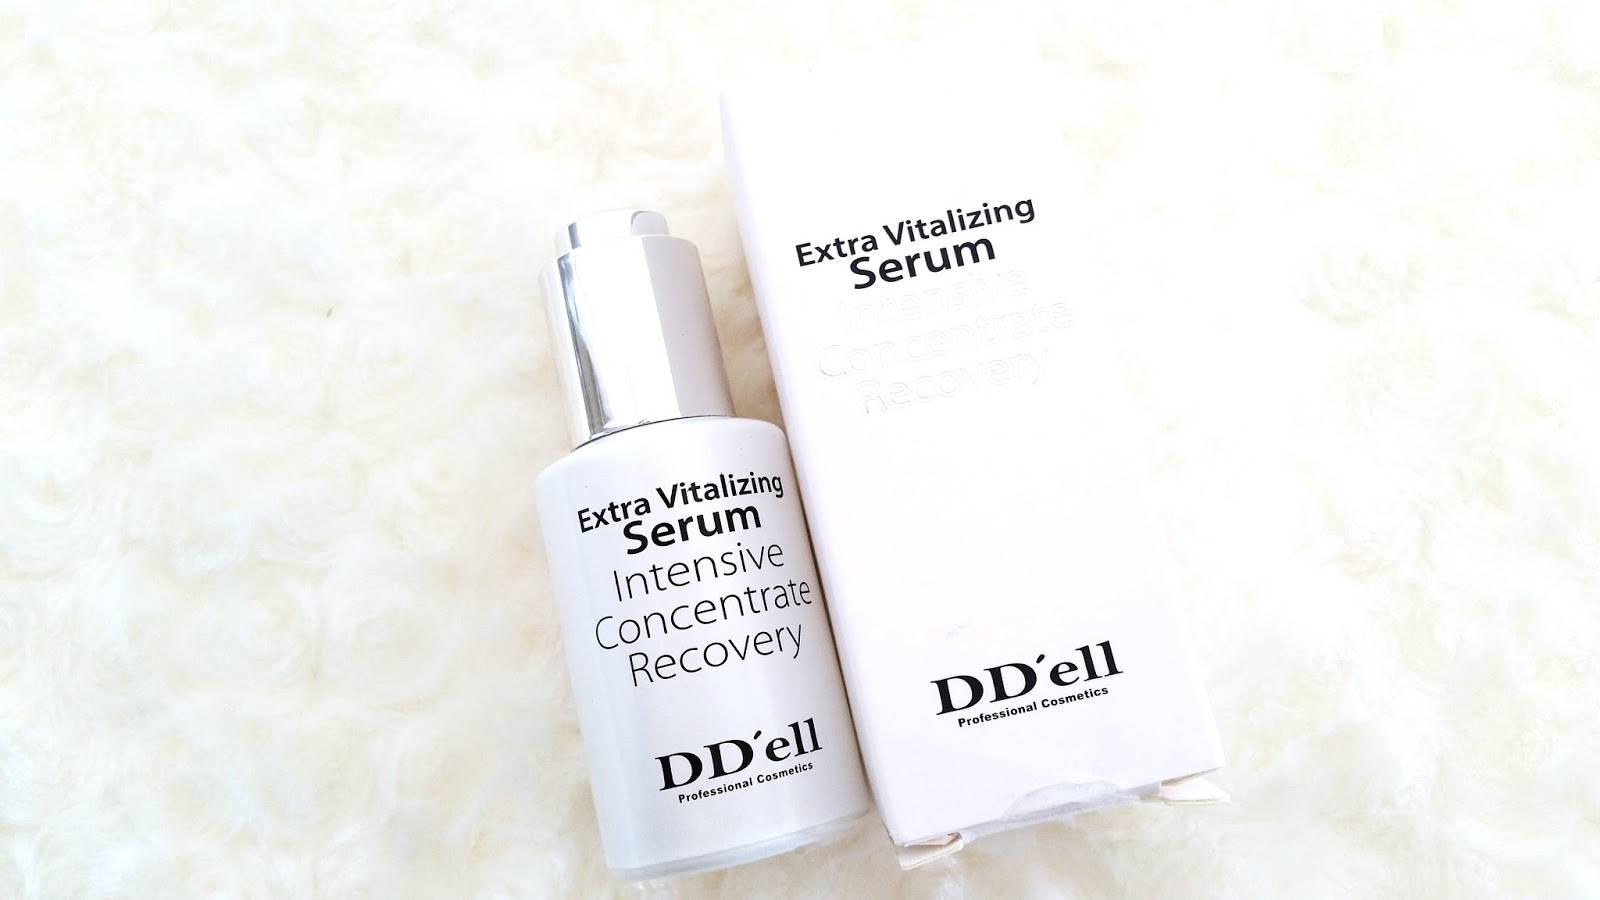 DD'ell Extra Vitalizing Serum Review | Dreams to Creations